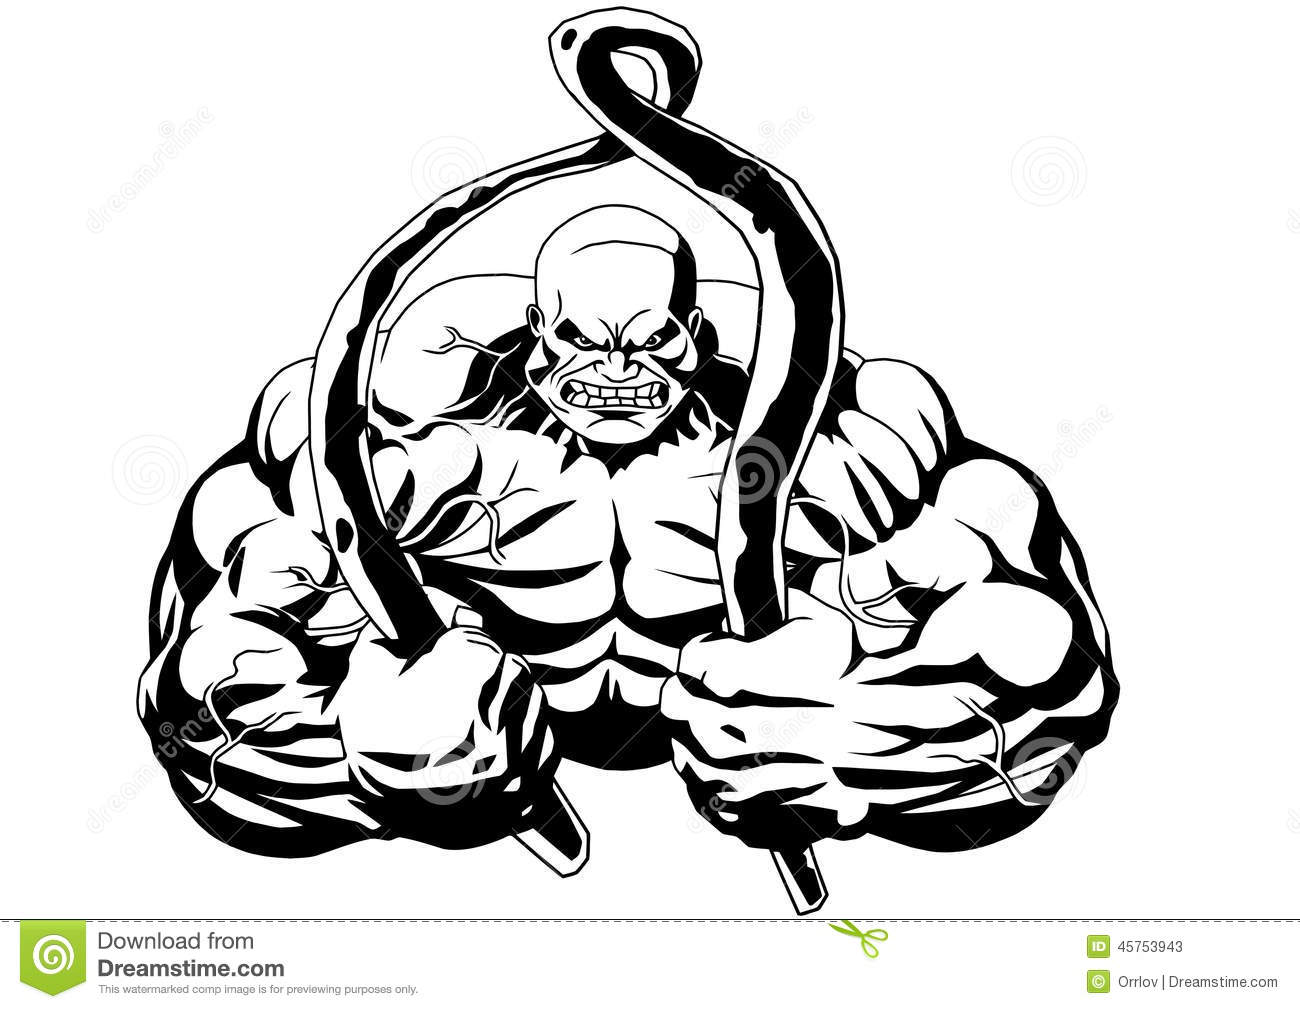 Powerlifting Stock Vector Illustration Of Huge Hand